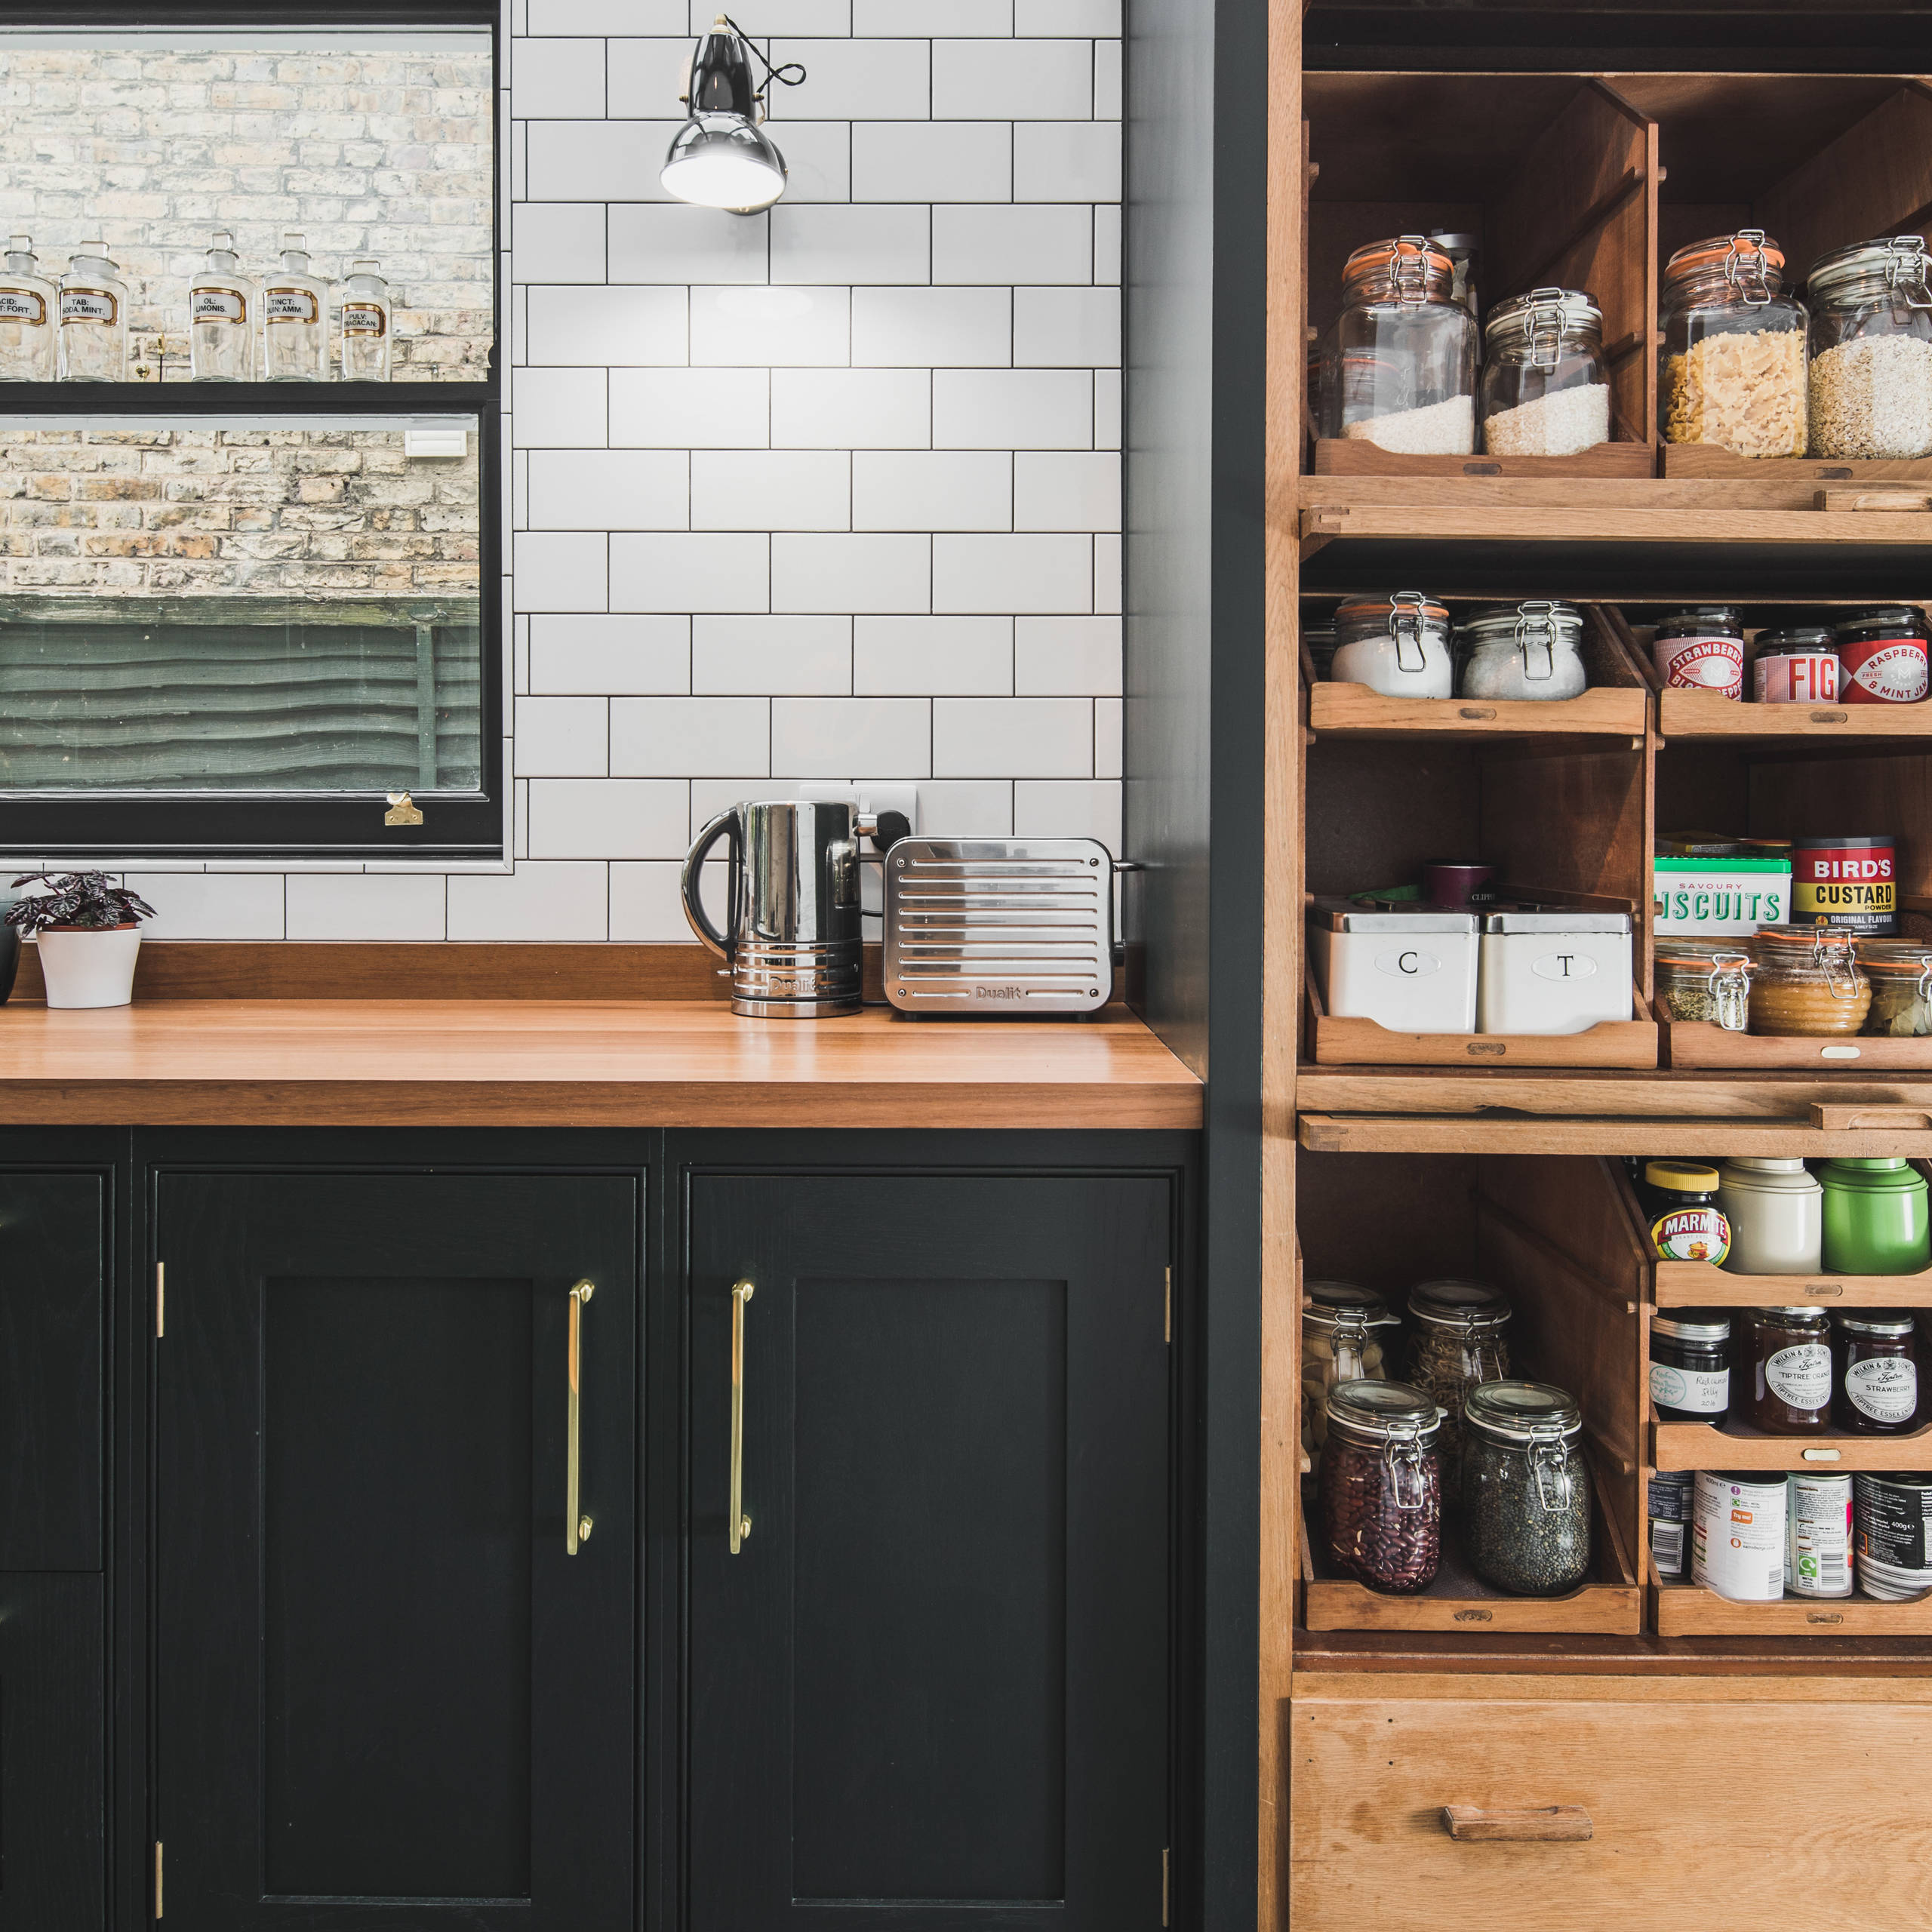 75 Beautiful Kitchen With Green Cabinets And Wood Countertops Pictures Ideas July 2021 Houzz